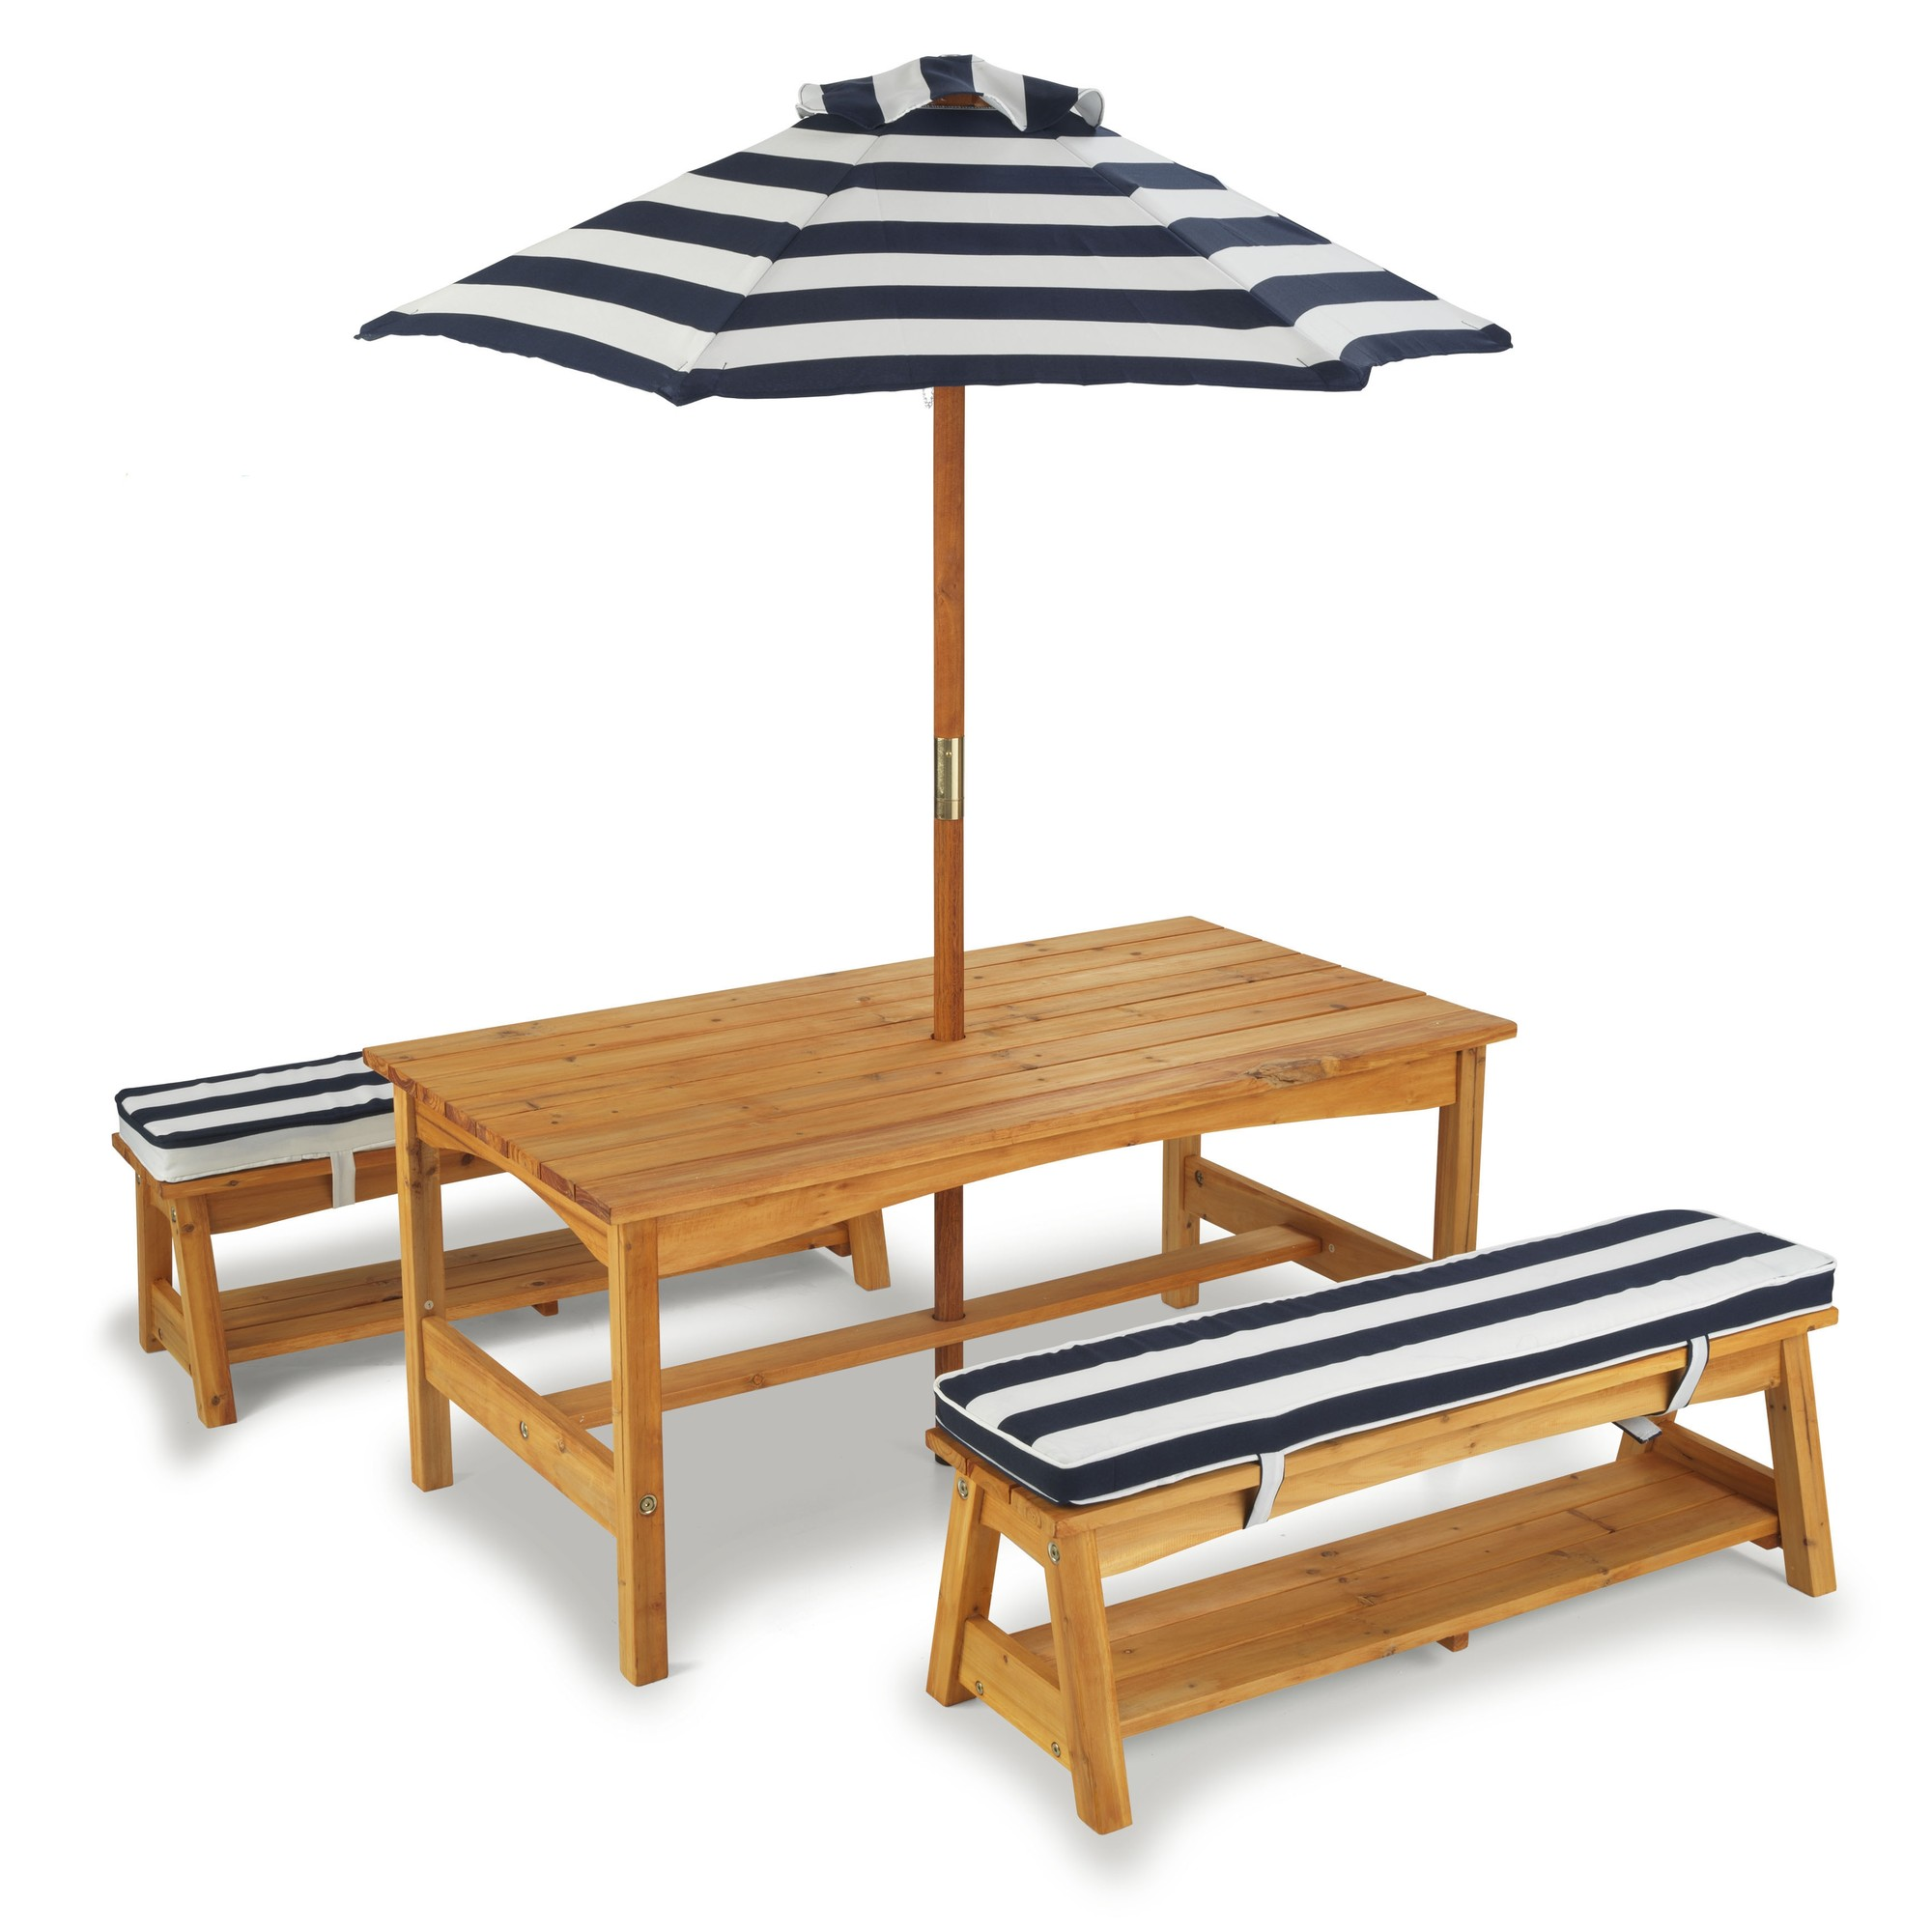 Wooden Kinder Garden Picnic Table With Cushions And Parasol